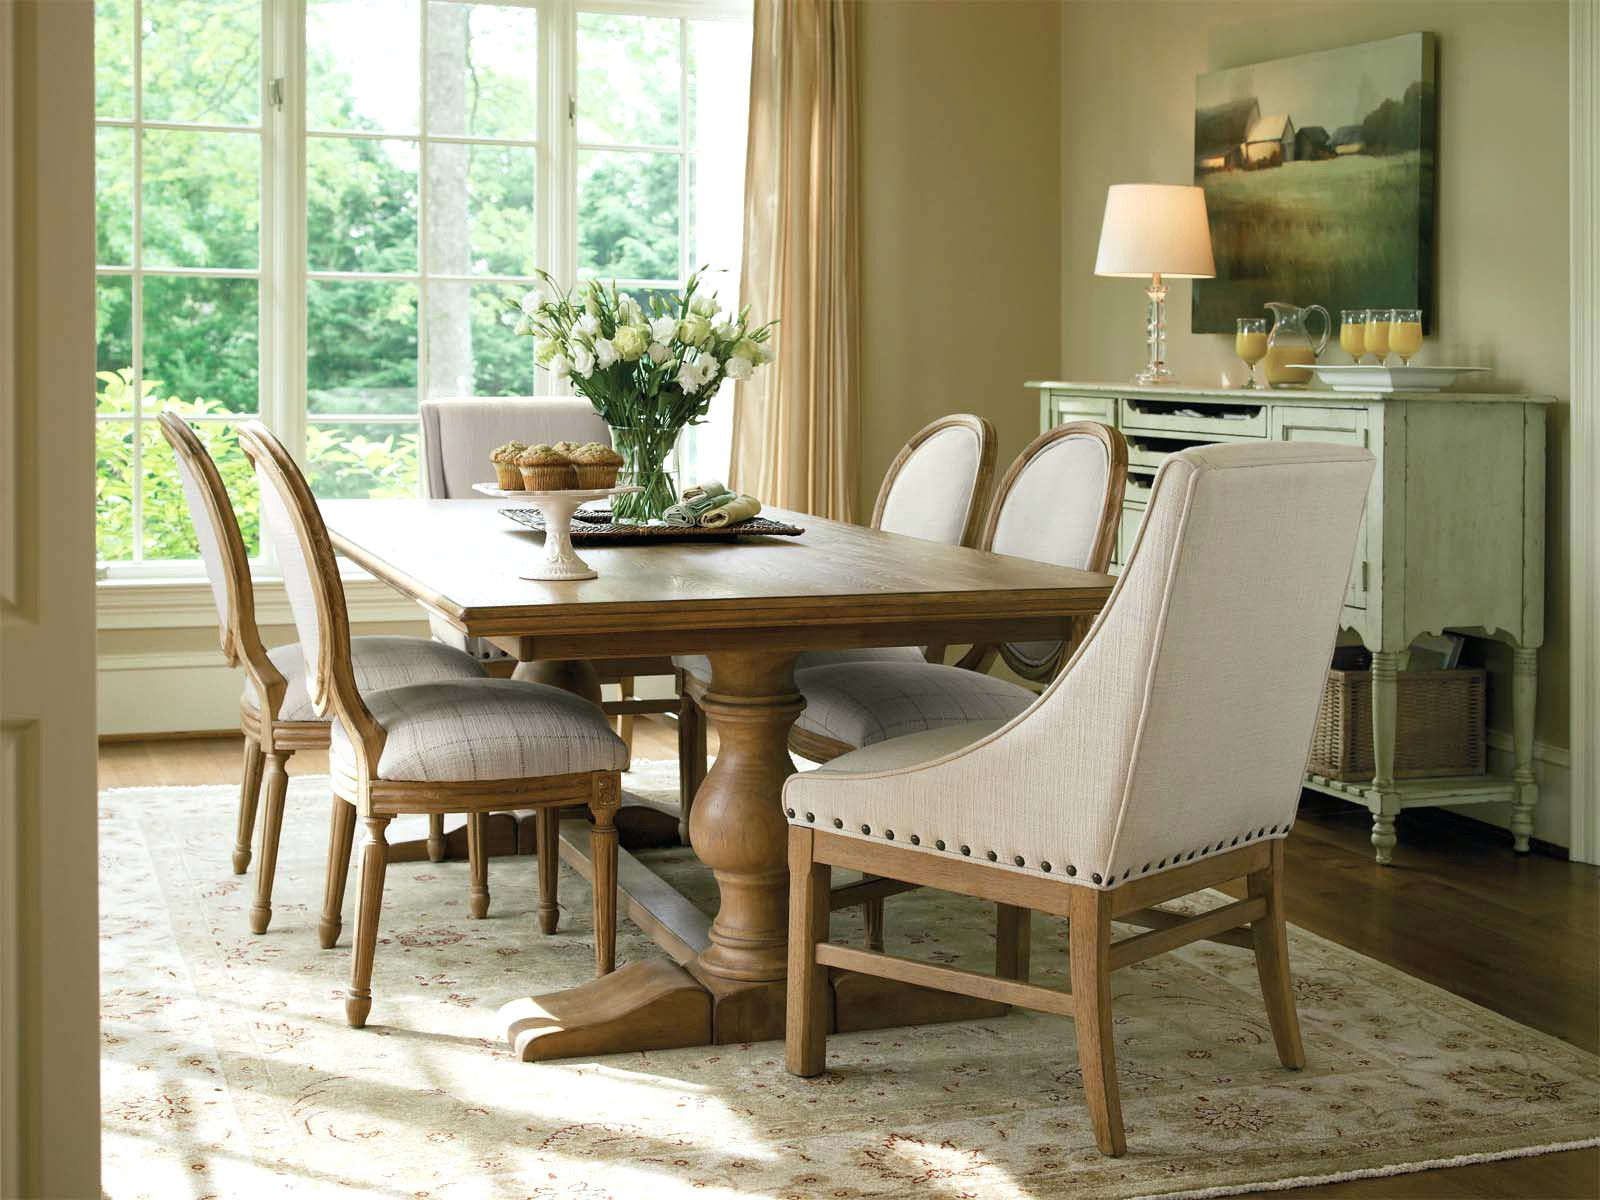 French Country Dining Table With Bench Country Style Dining Table With Bench Country D Farmhouse Dining Room Farmhouse Dining Room Table Farmhouse Dining Table